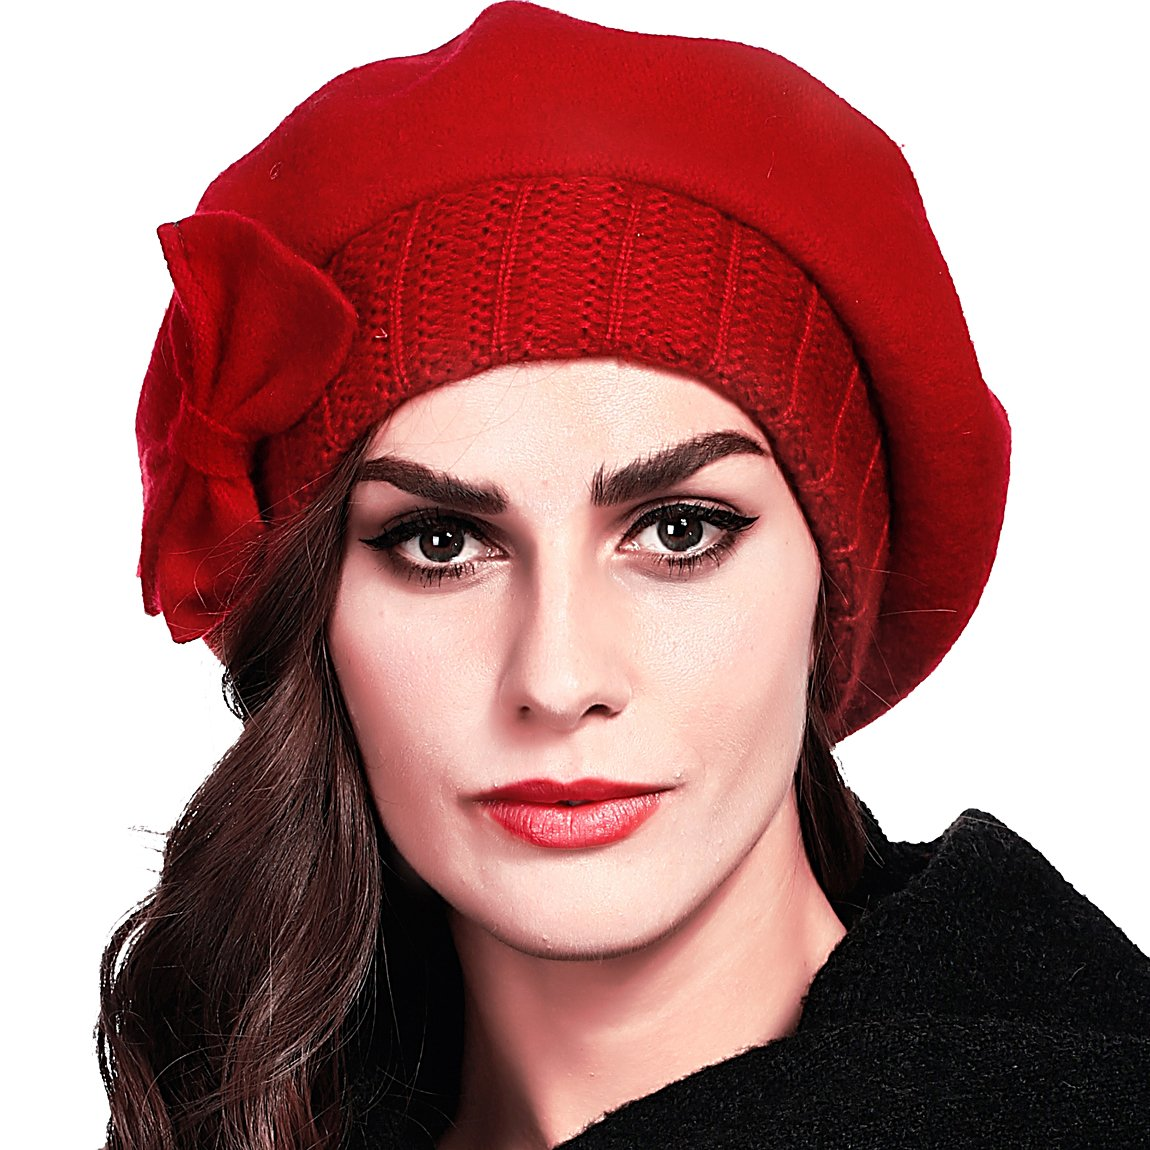 FORBUSITE Cute Womens 100% Wool Beret Knit Cap with Bow In 10 Colors HY022B-BK